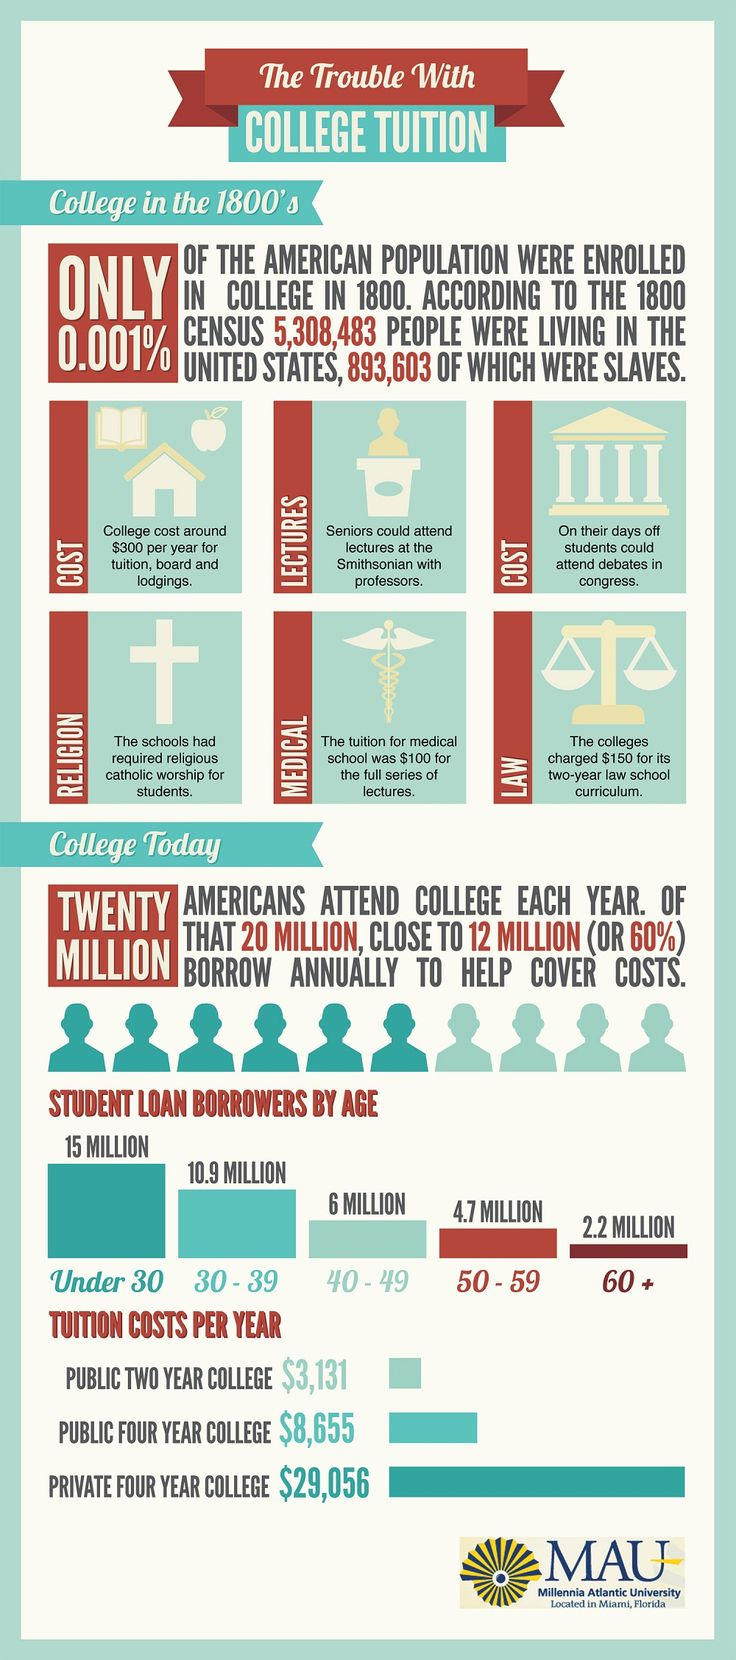 The Trouble With College Tuition [INFOGRAPHIC] #college #tuition